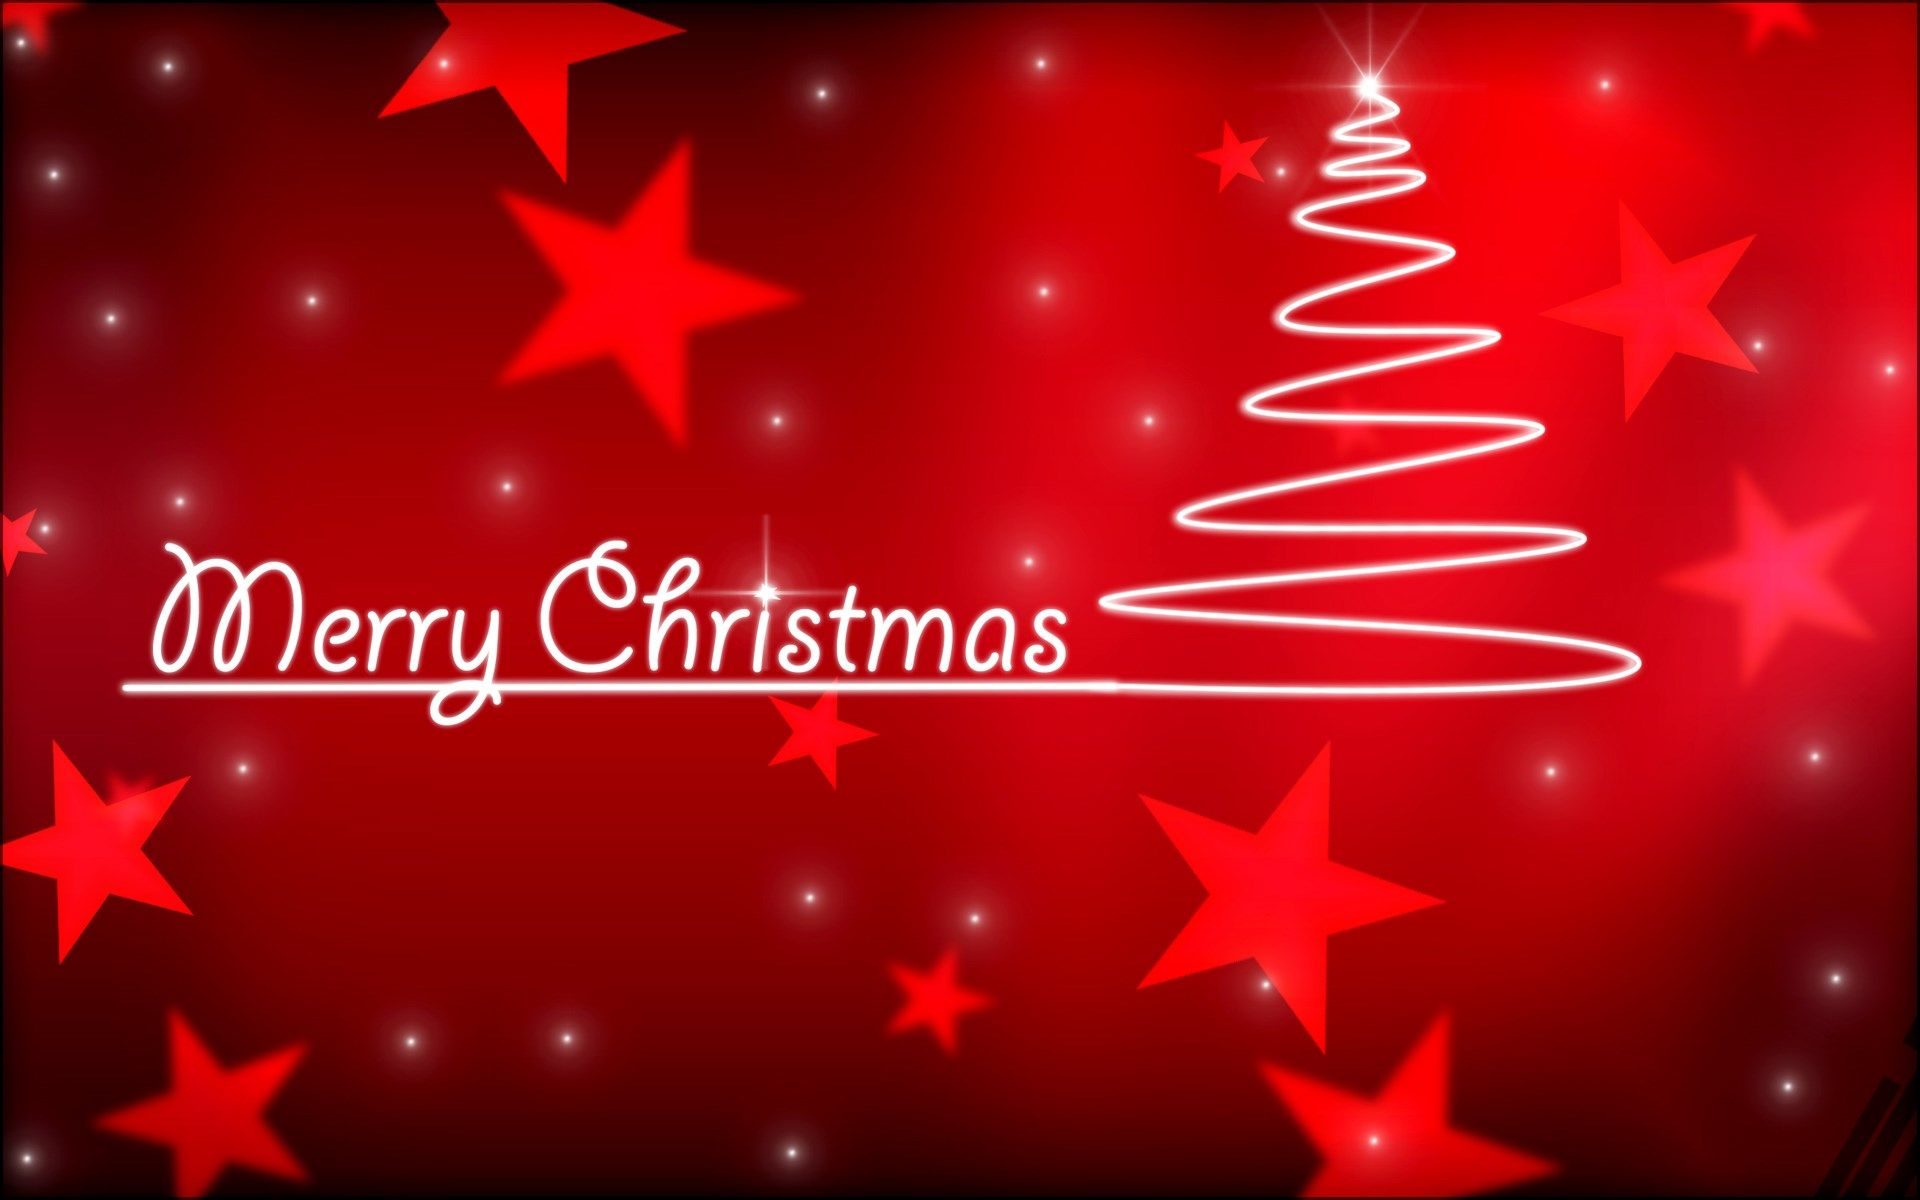 Hd Free Merry Christmas Backgrounds Merry Christmas Pictures Merry Christmas Images Merry Christmas Wallpaper